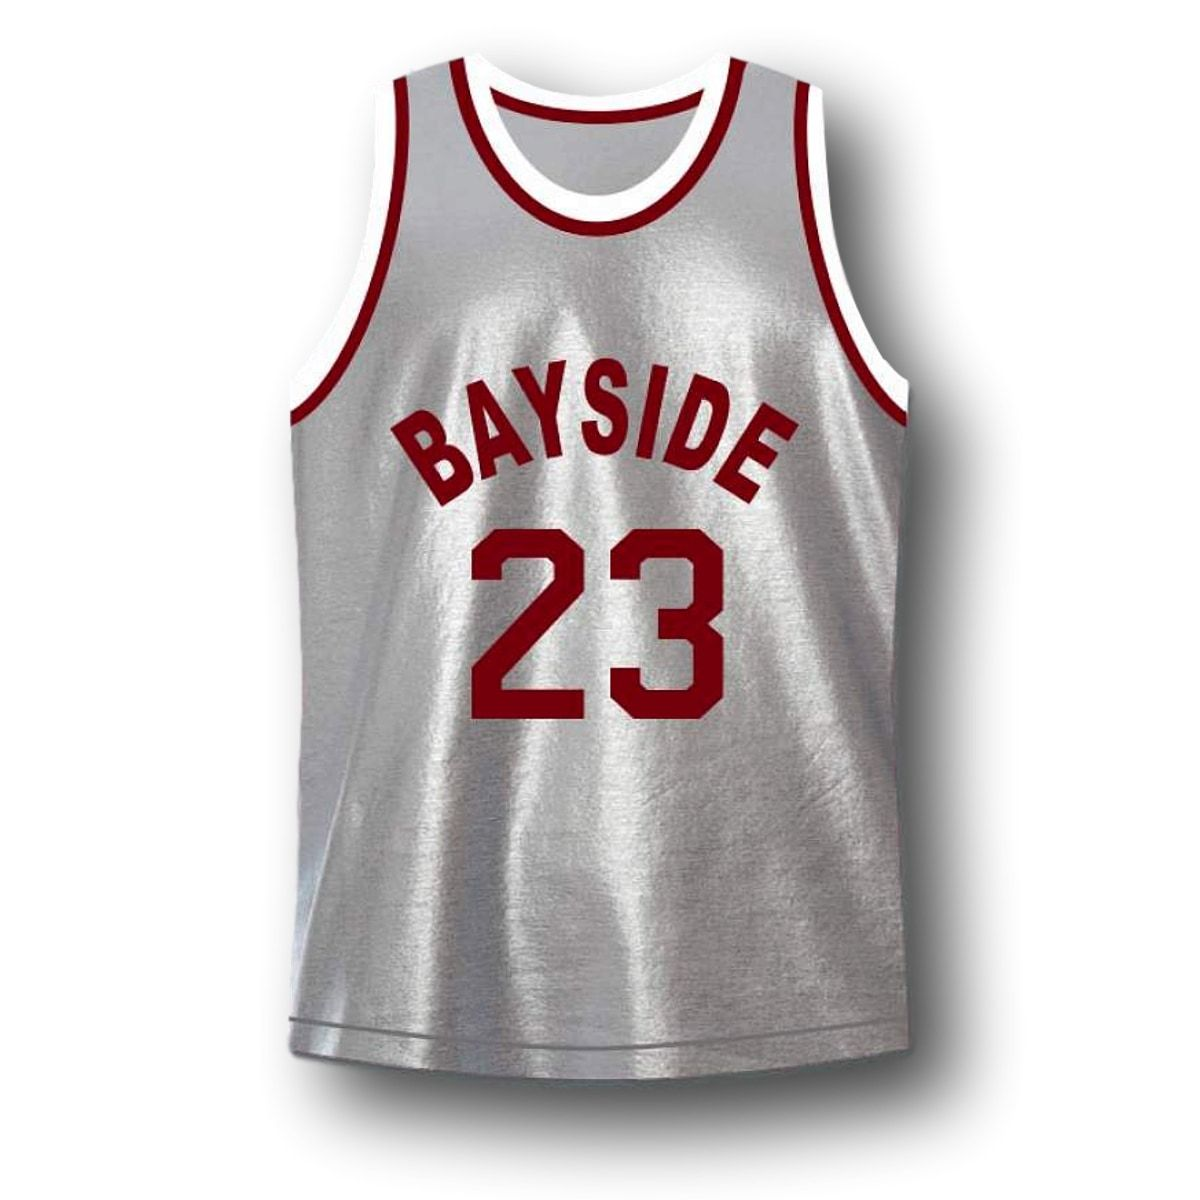 AC Slater #23 Bayside Saved By The Bell Basketball Jersey Grey Any Size